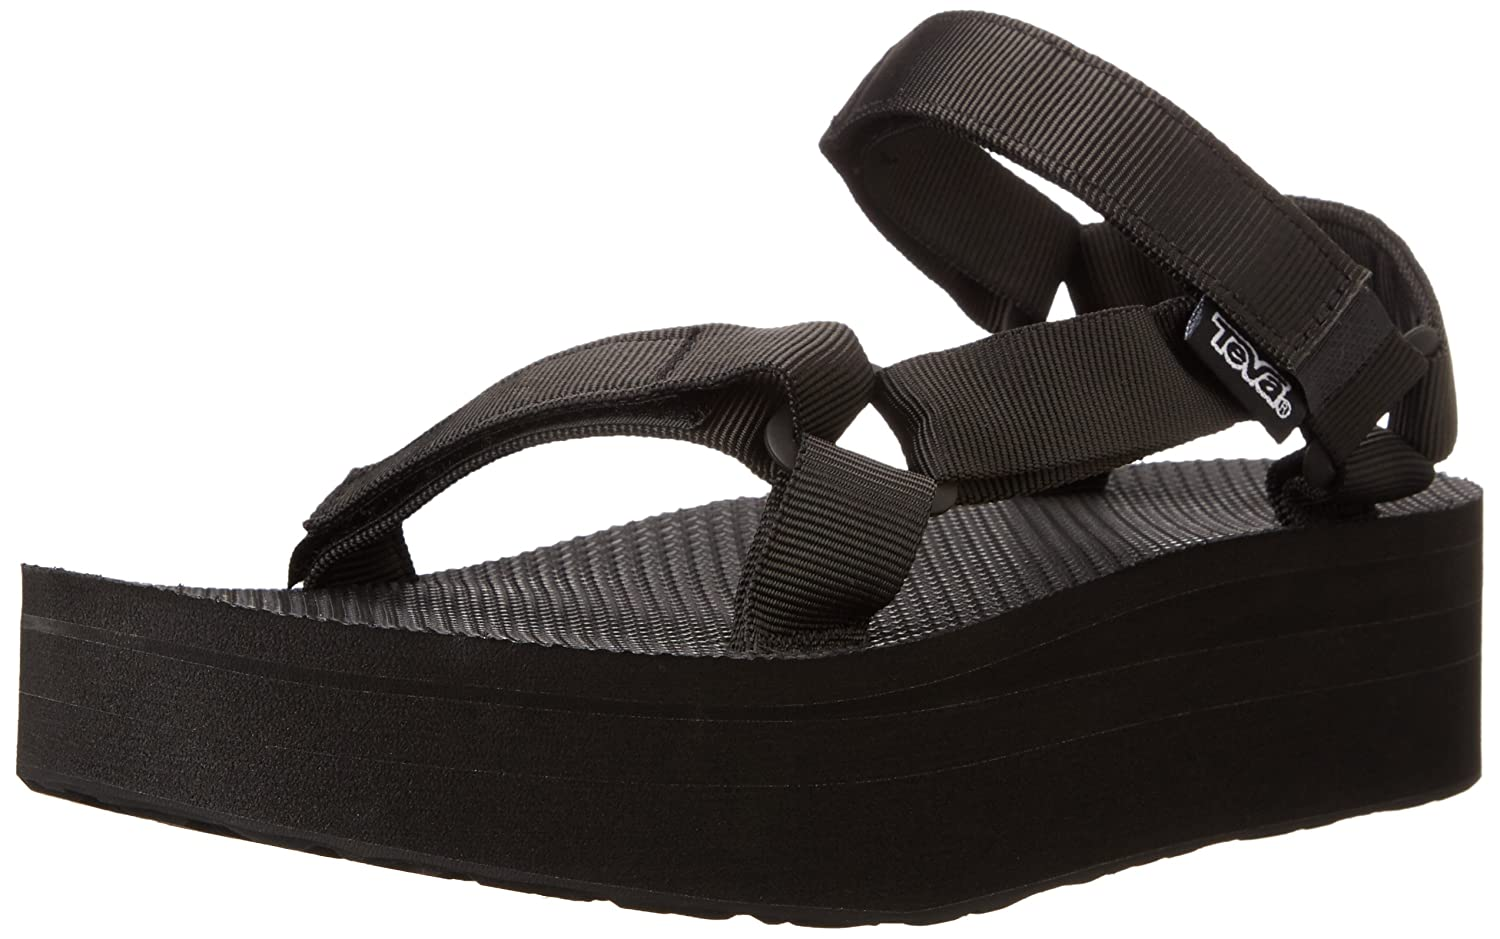 42b10c41fcc1 Teva Women s Flatform Universal Sandals  Teva  Amazon.ca  Shoes   Handbags